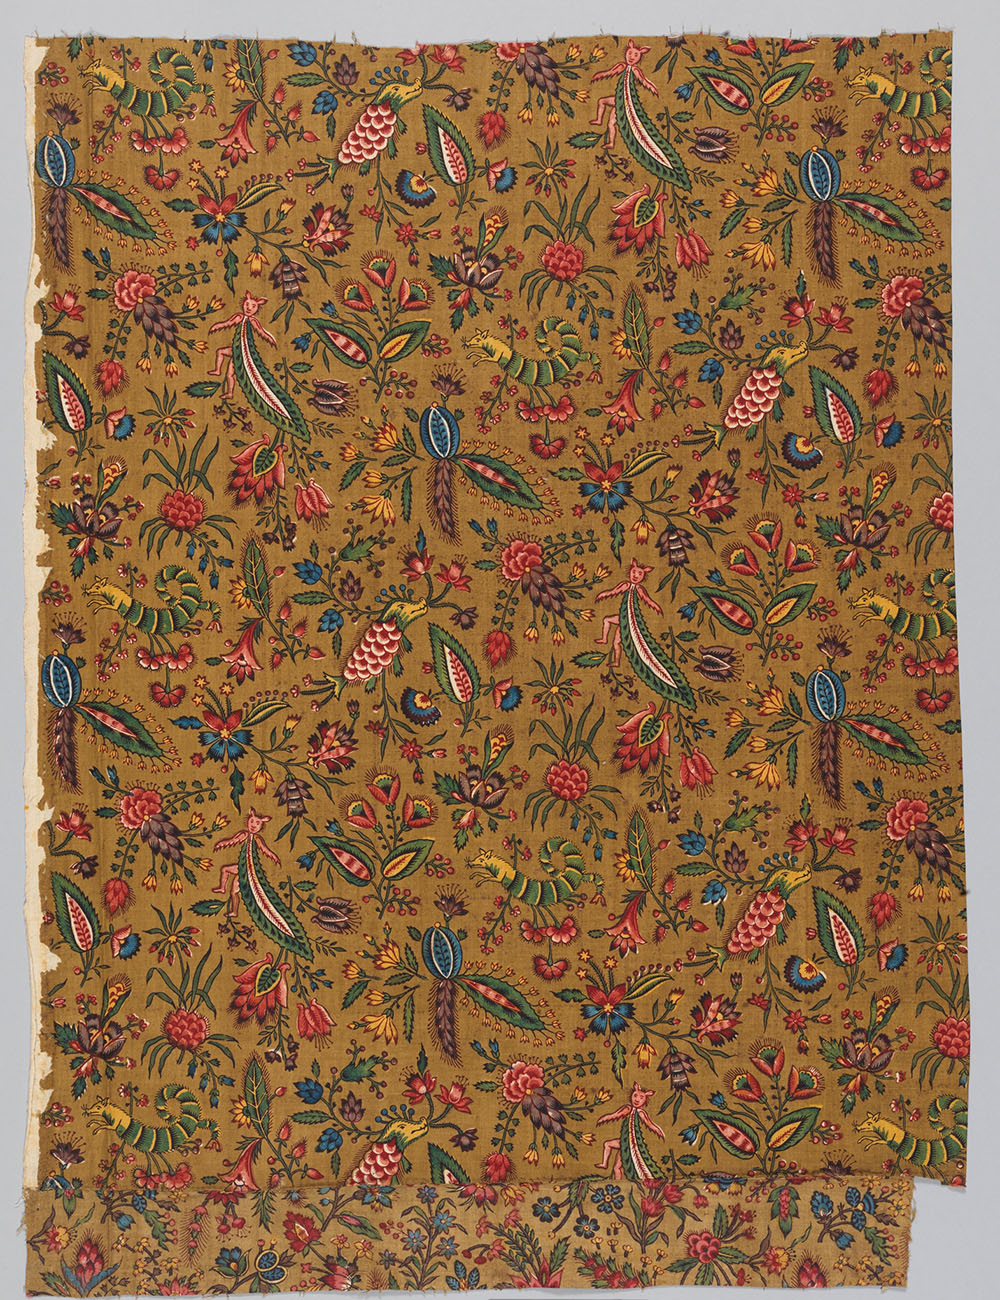 French 18th century fabric that mimicked Indian designs